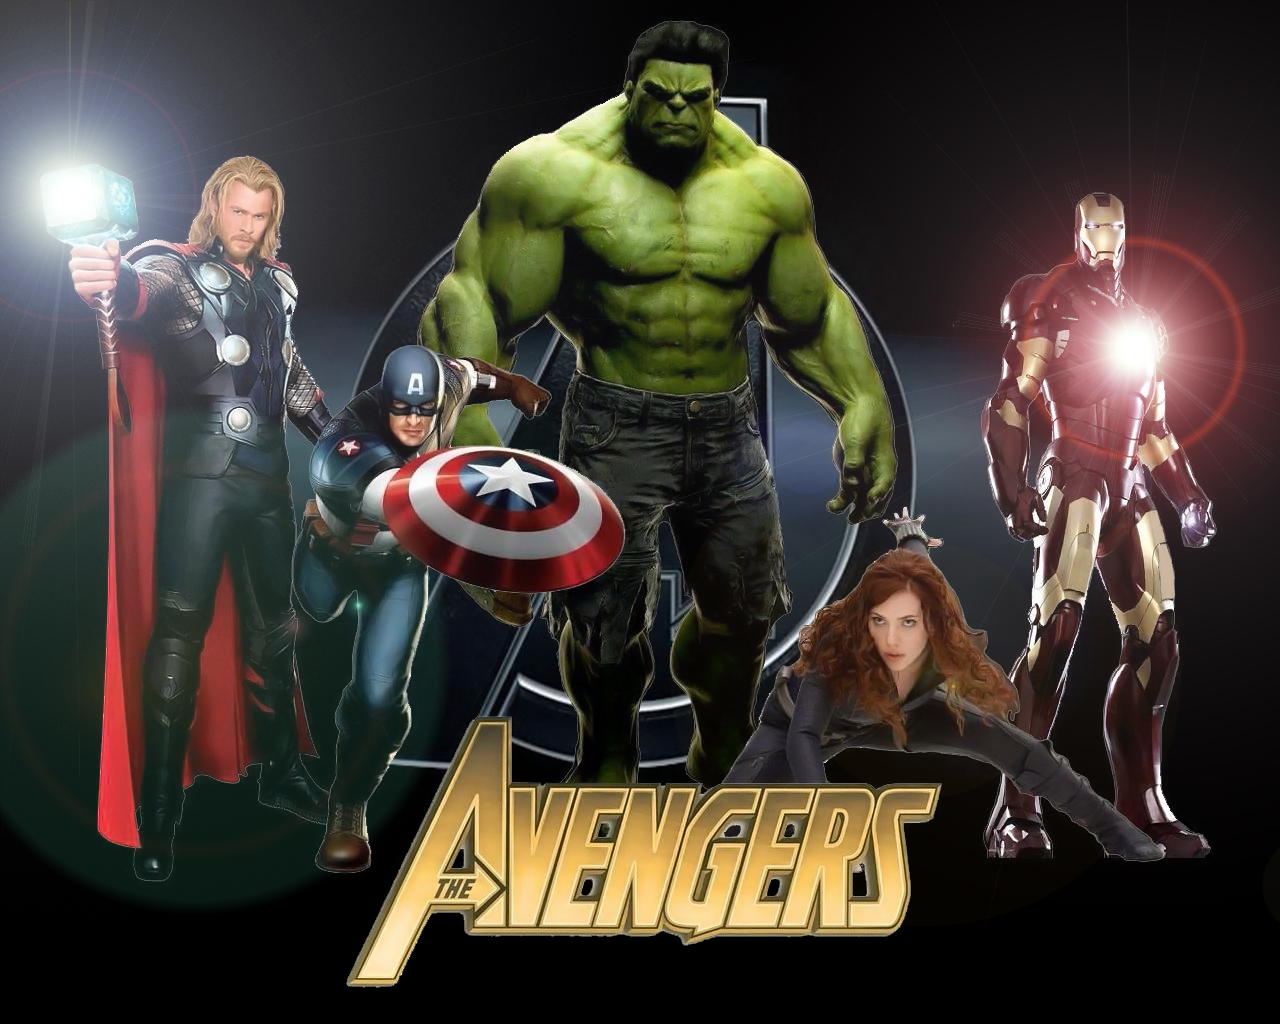 The Avengers Movie: The Avengers 2012 HQ